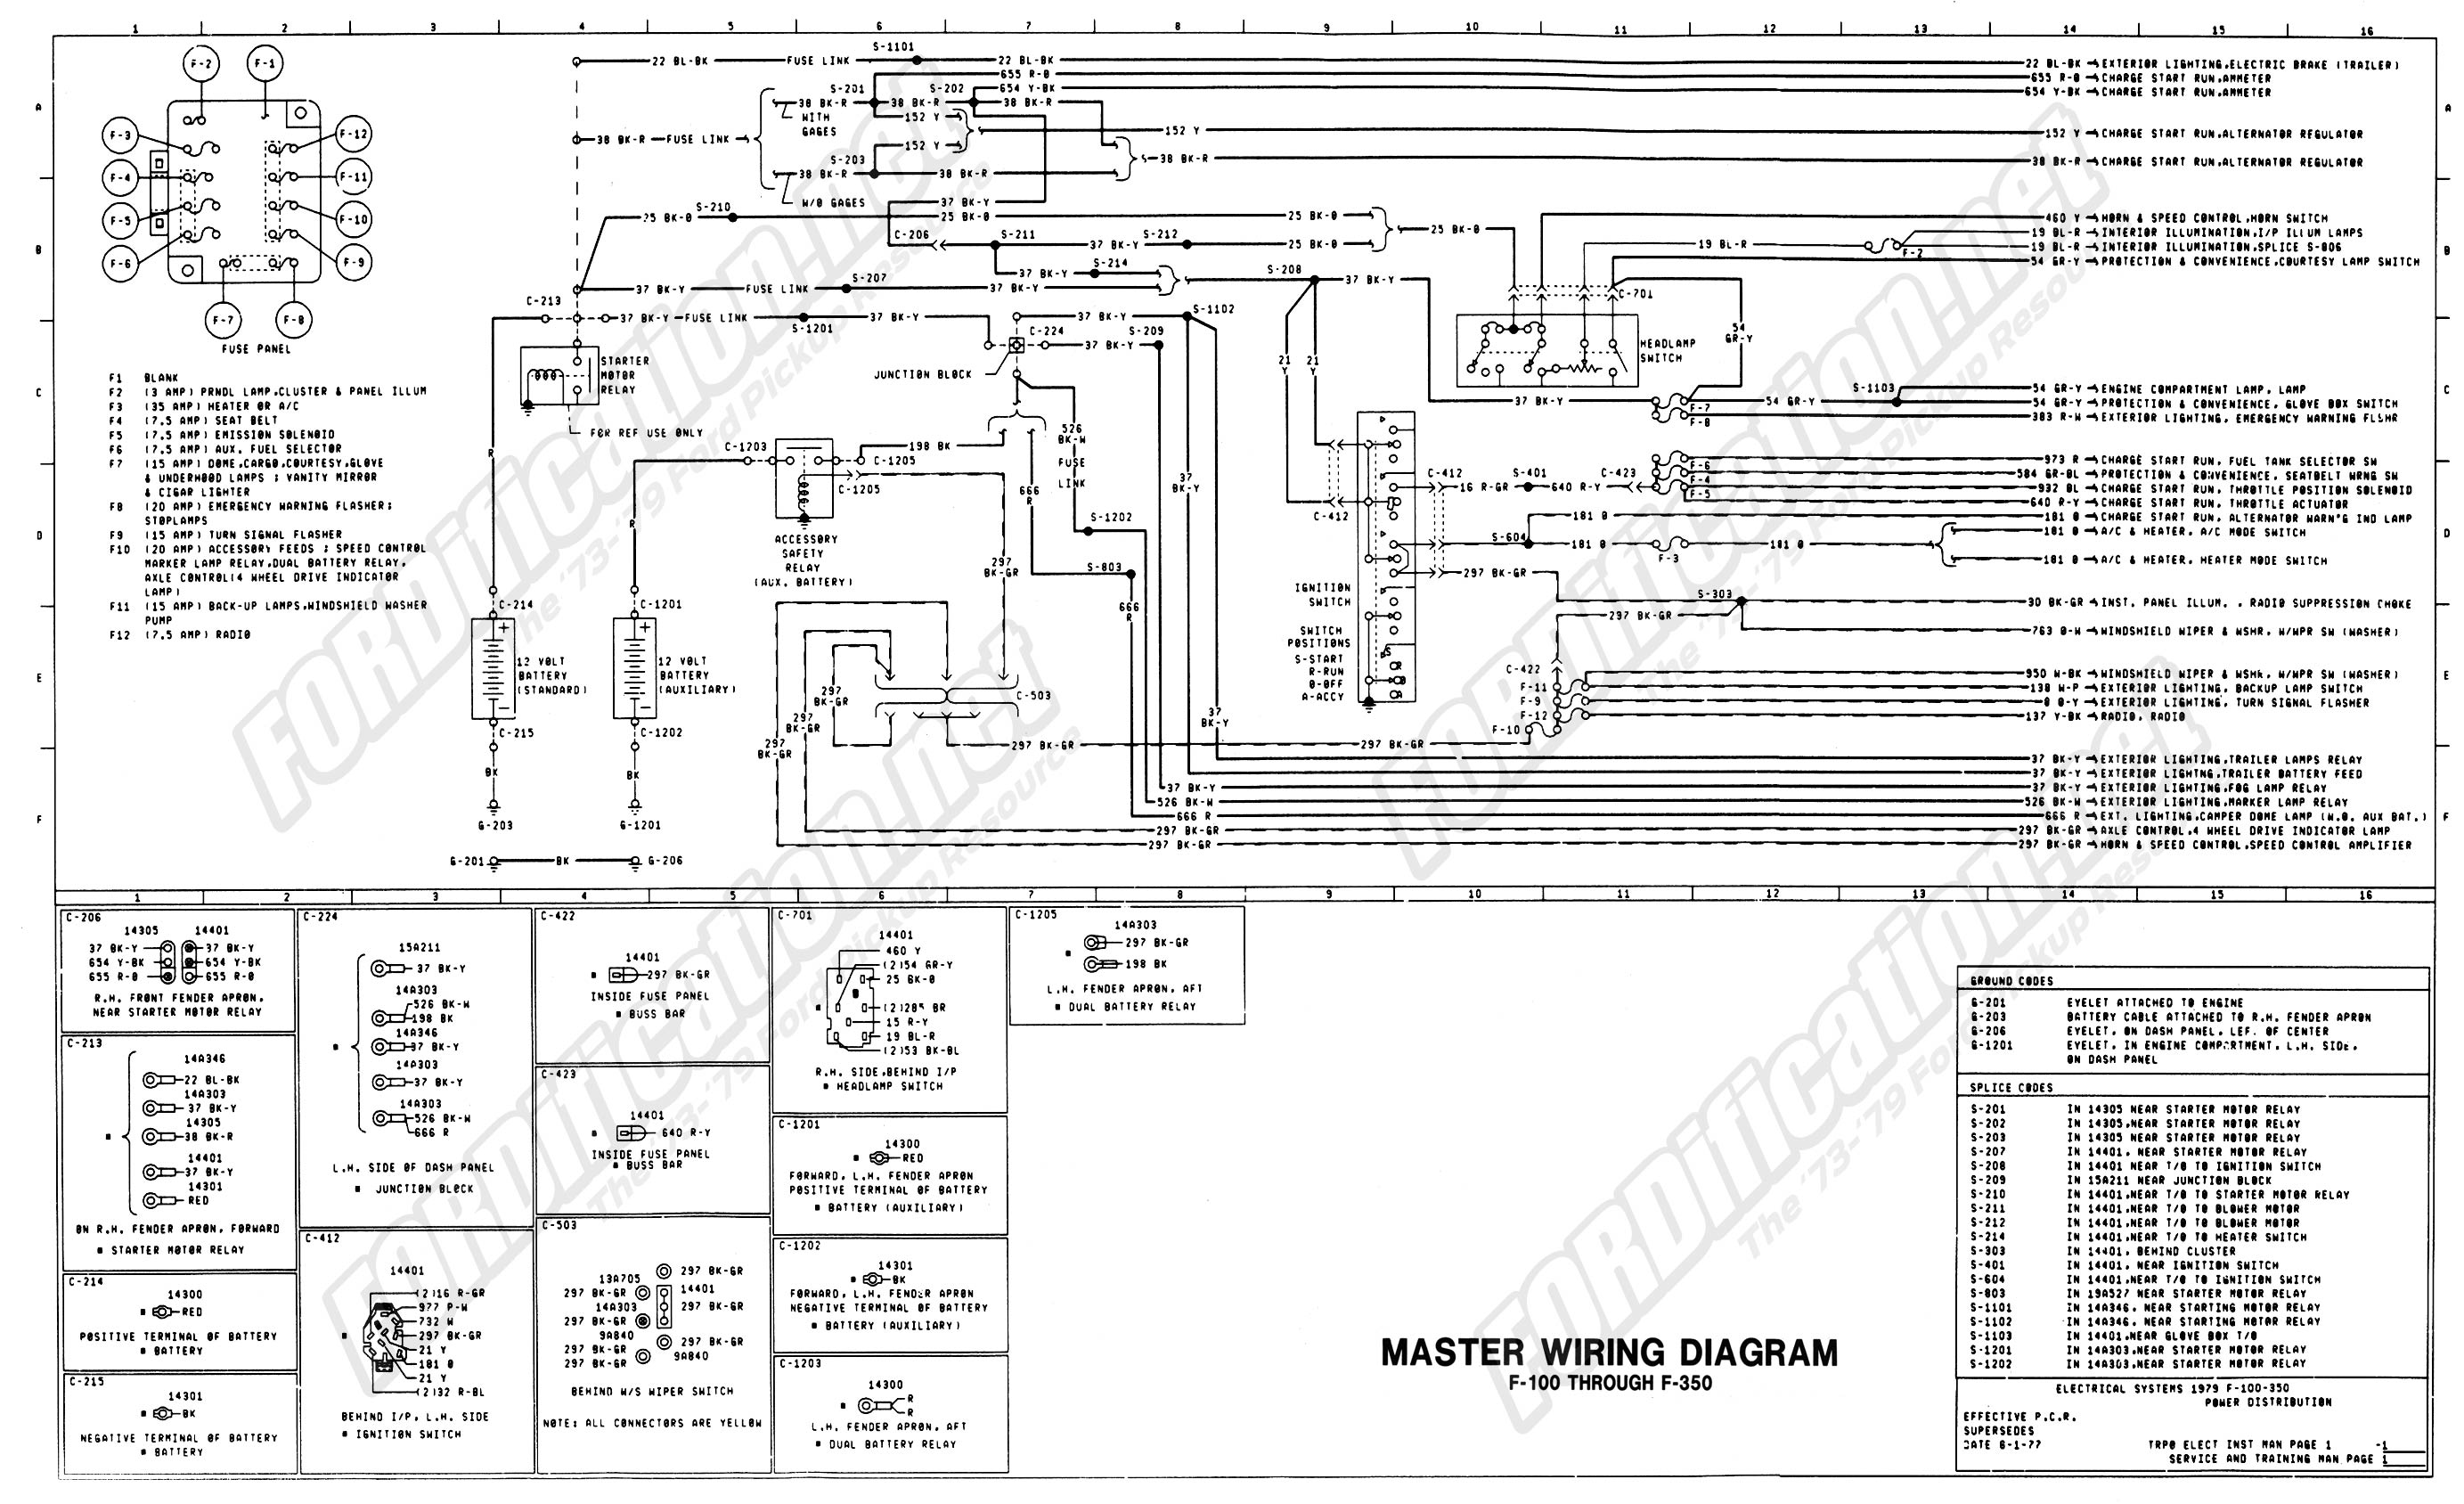 1973 1979 ford truck wiring diagrams   schematics fordification net 1956 Chevy Headlight Switch Wiring Diagram 57 Chevy Headlight Switch Wiring Diagram